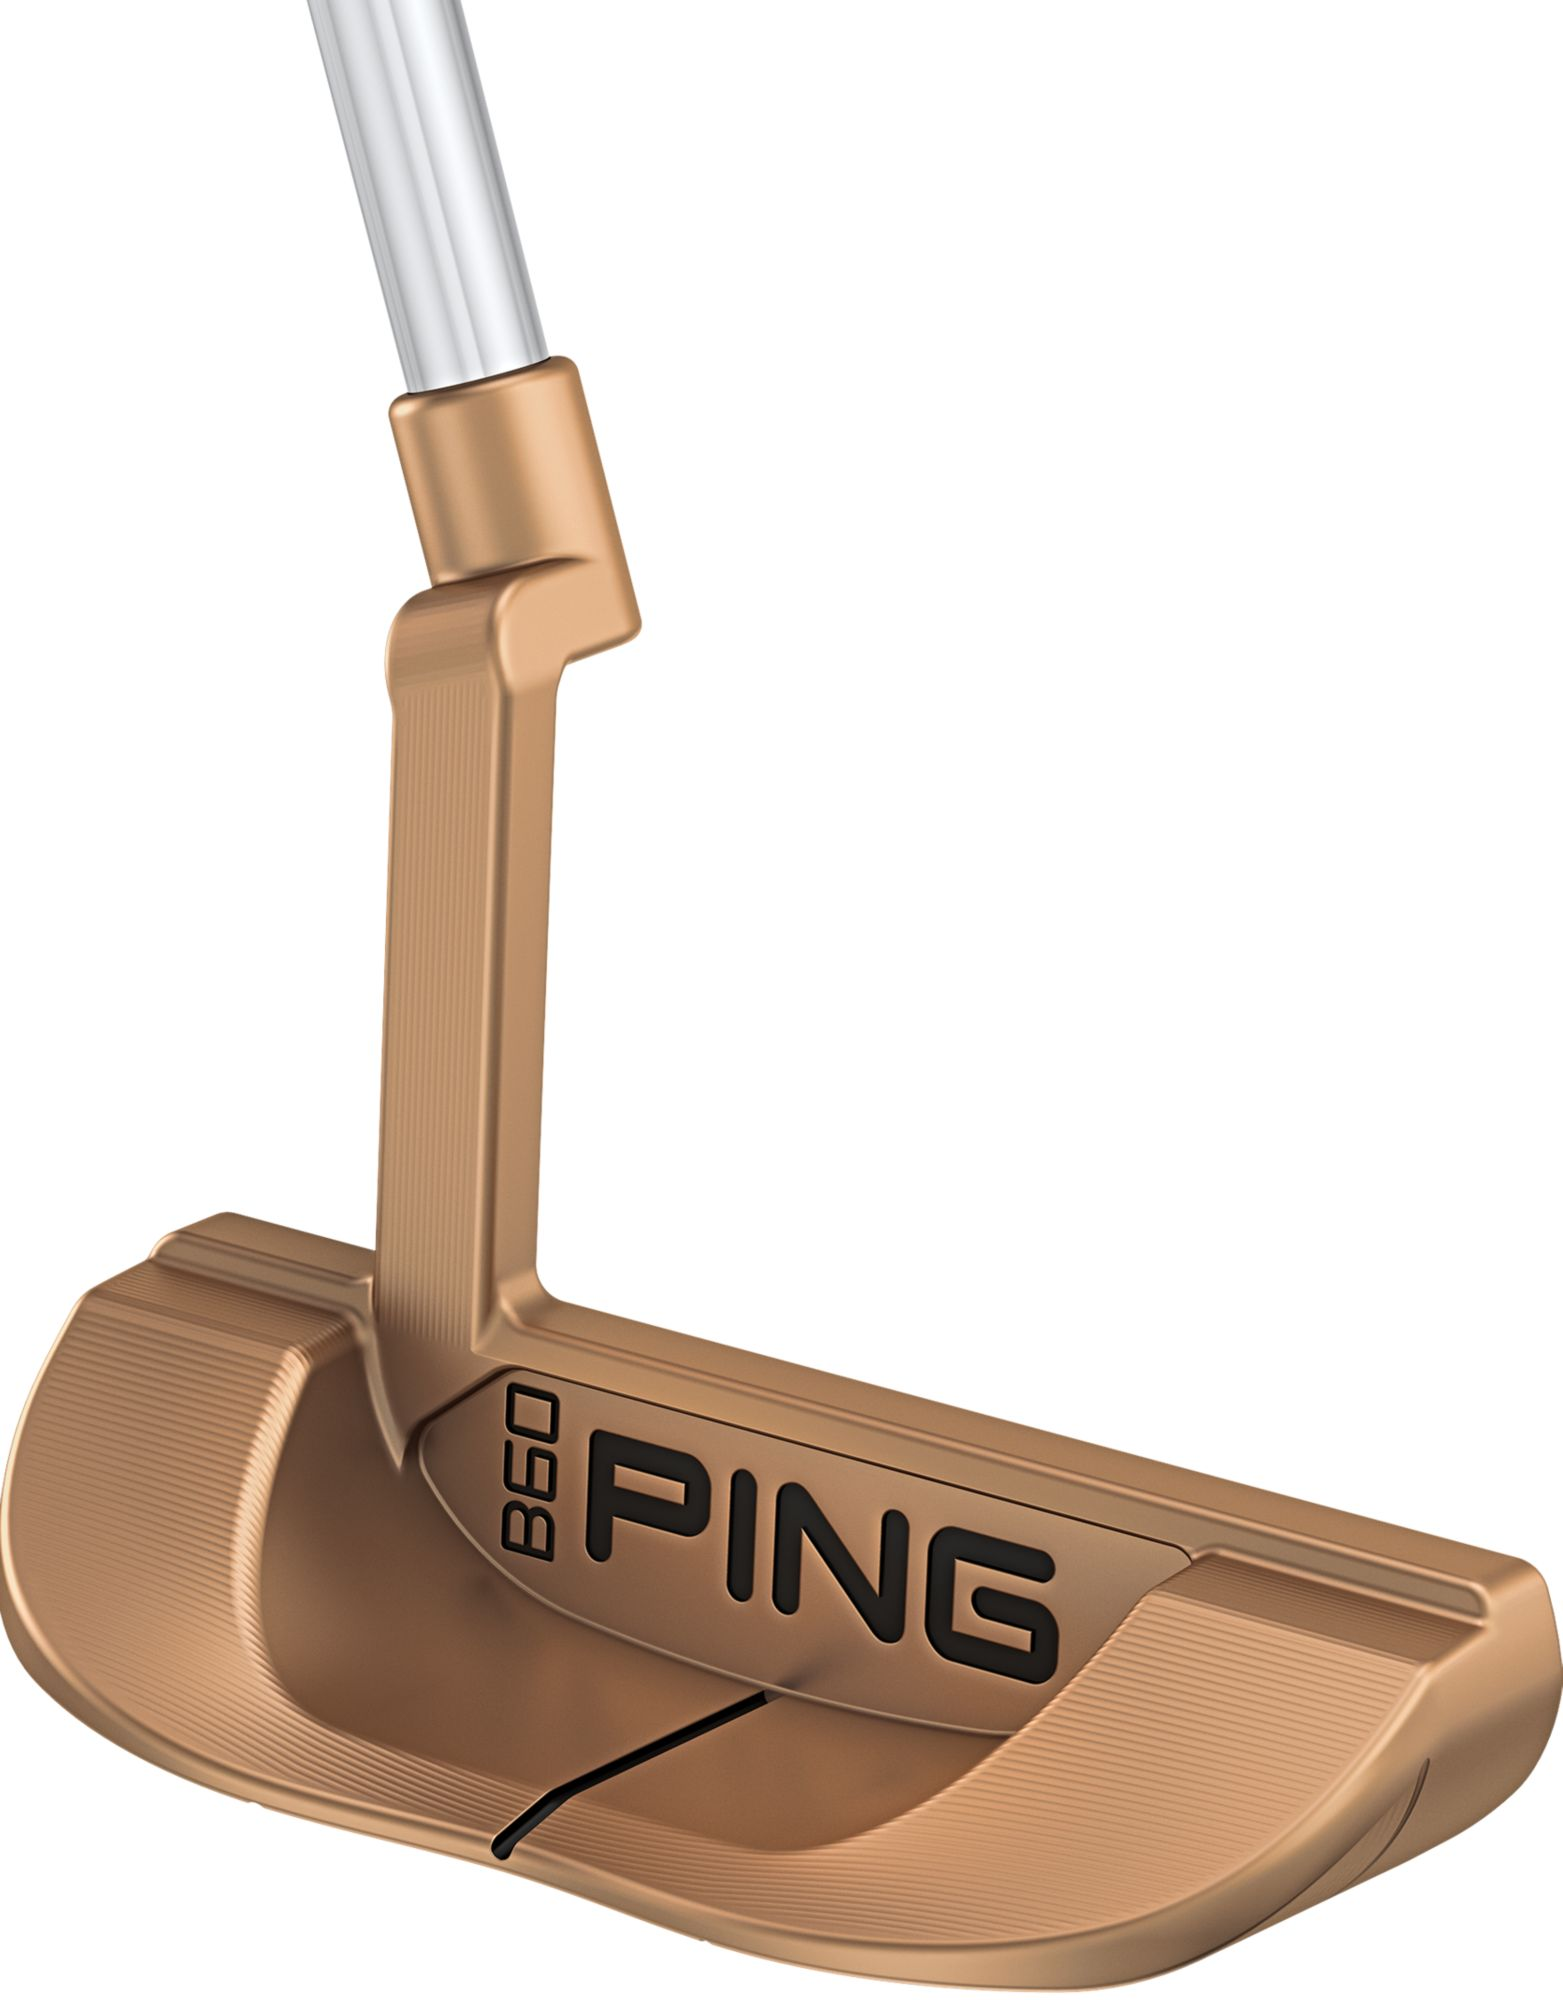 Dating ping anser putters